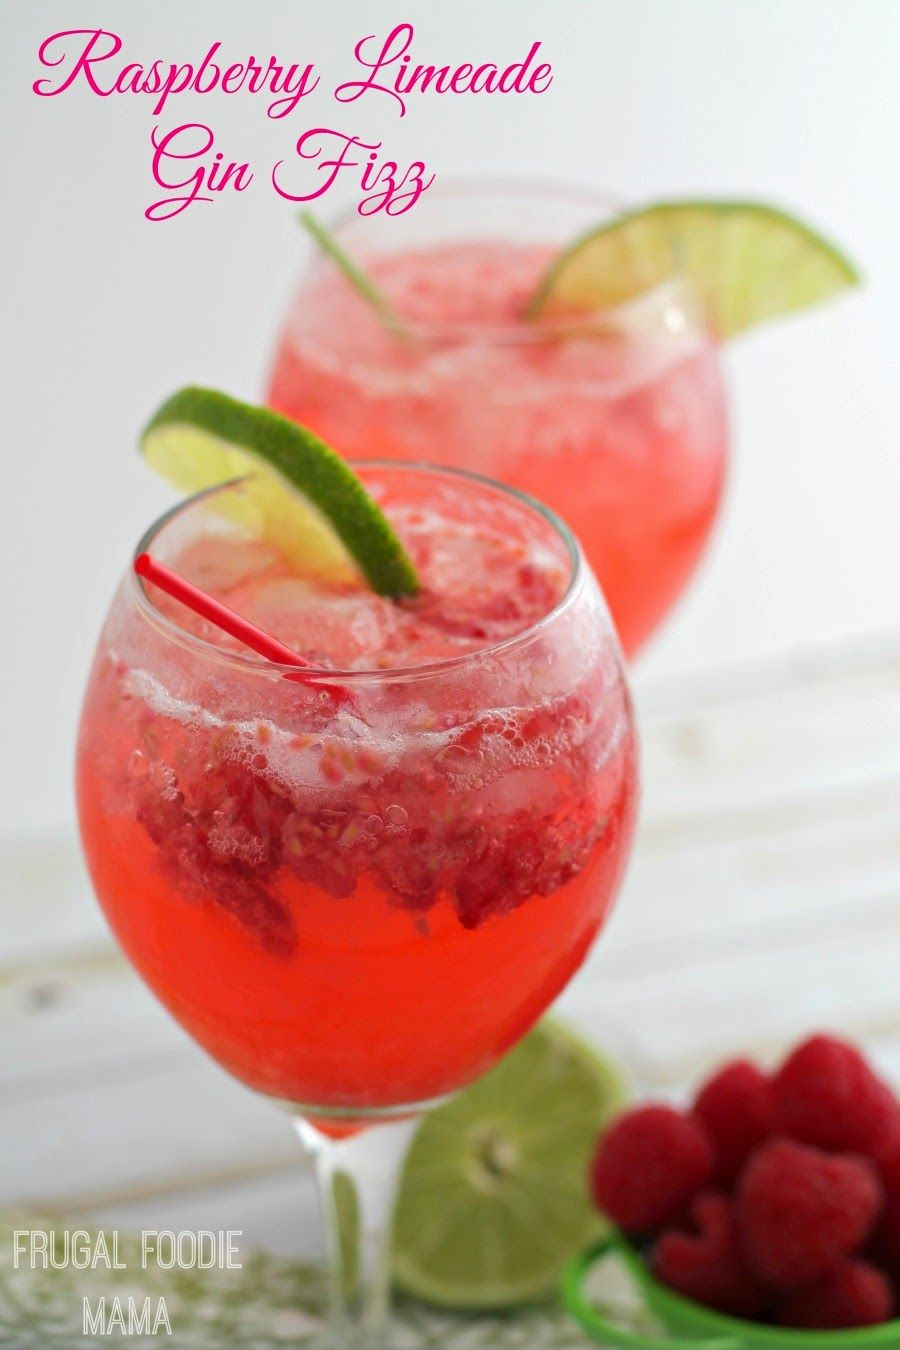 Fresh raspberries, lime, bubbly club soda, and a little gin come together in this perfect for spring Raspberry Limeade Gin Fizz